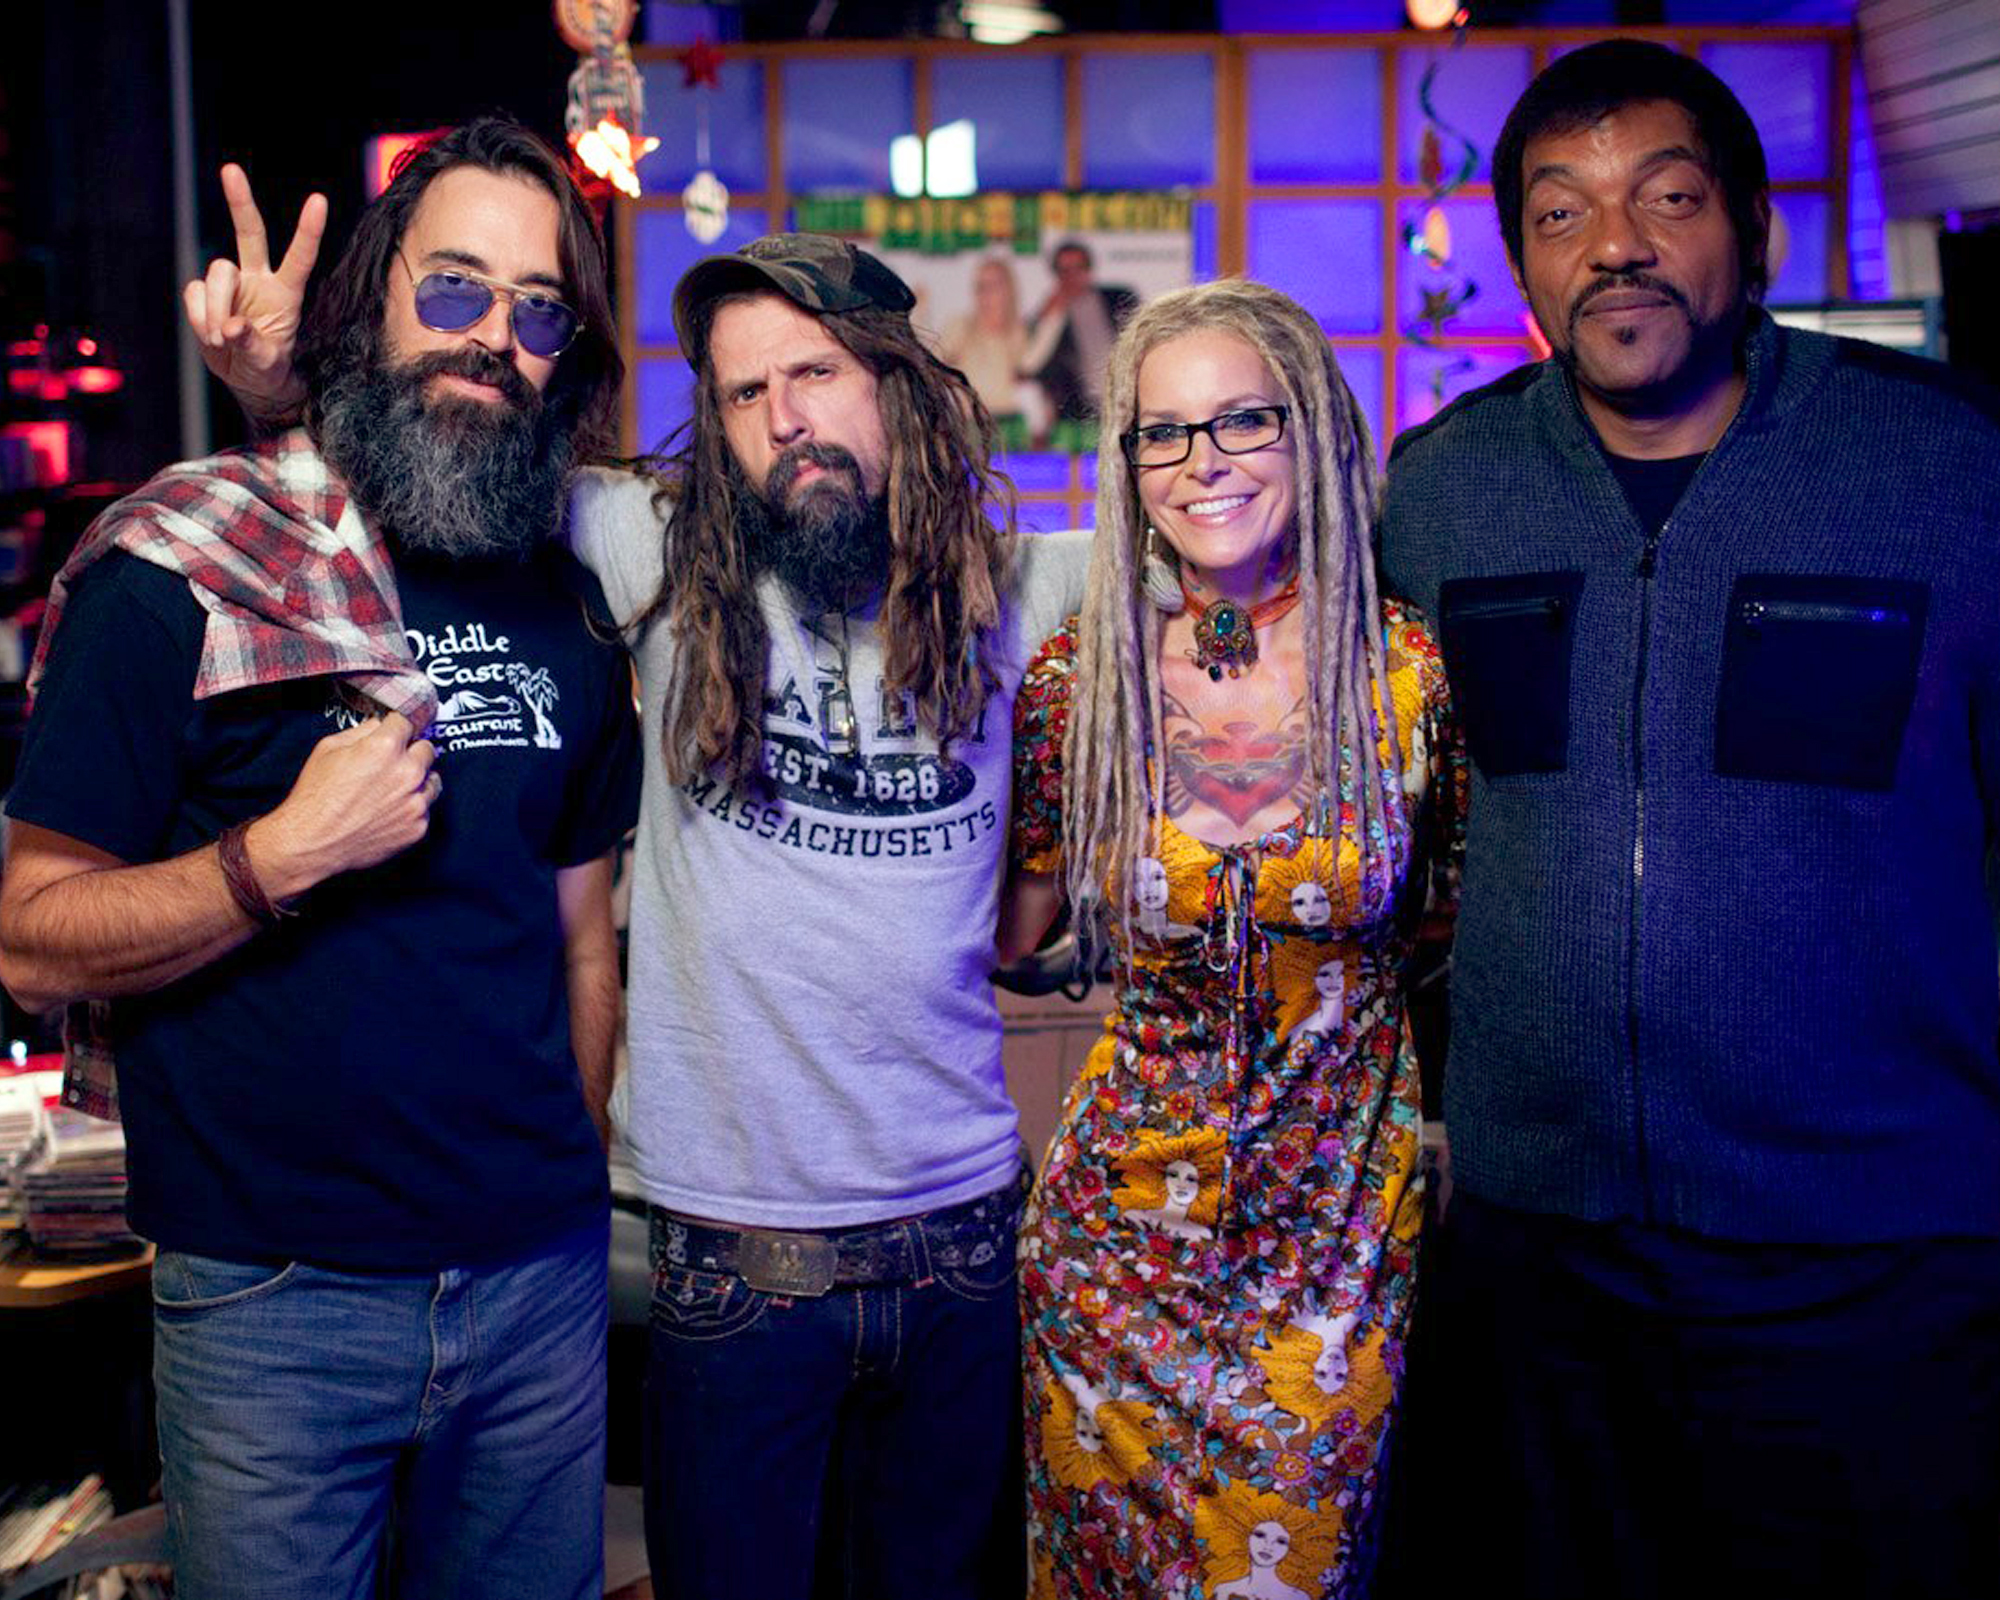 THE LORDS OF SALEM with Rob Zombie, Sheri Moon Zombie and Ken Foree.